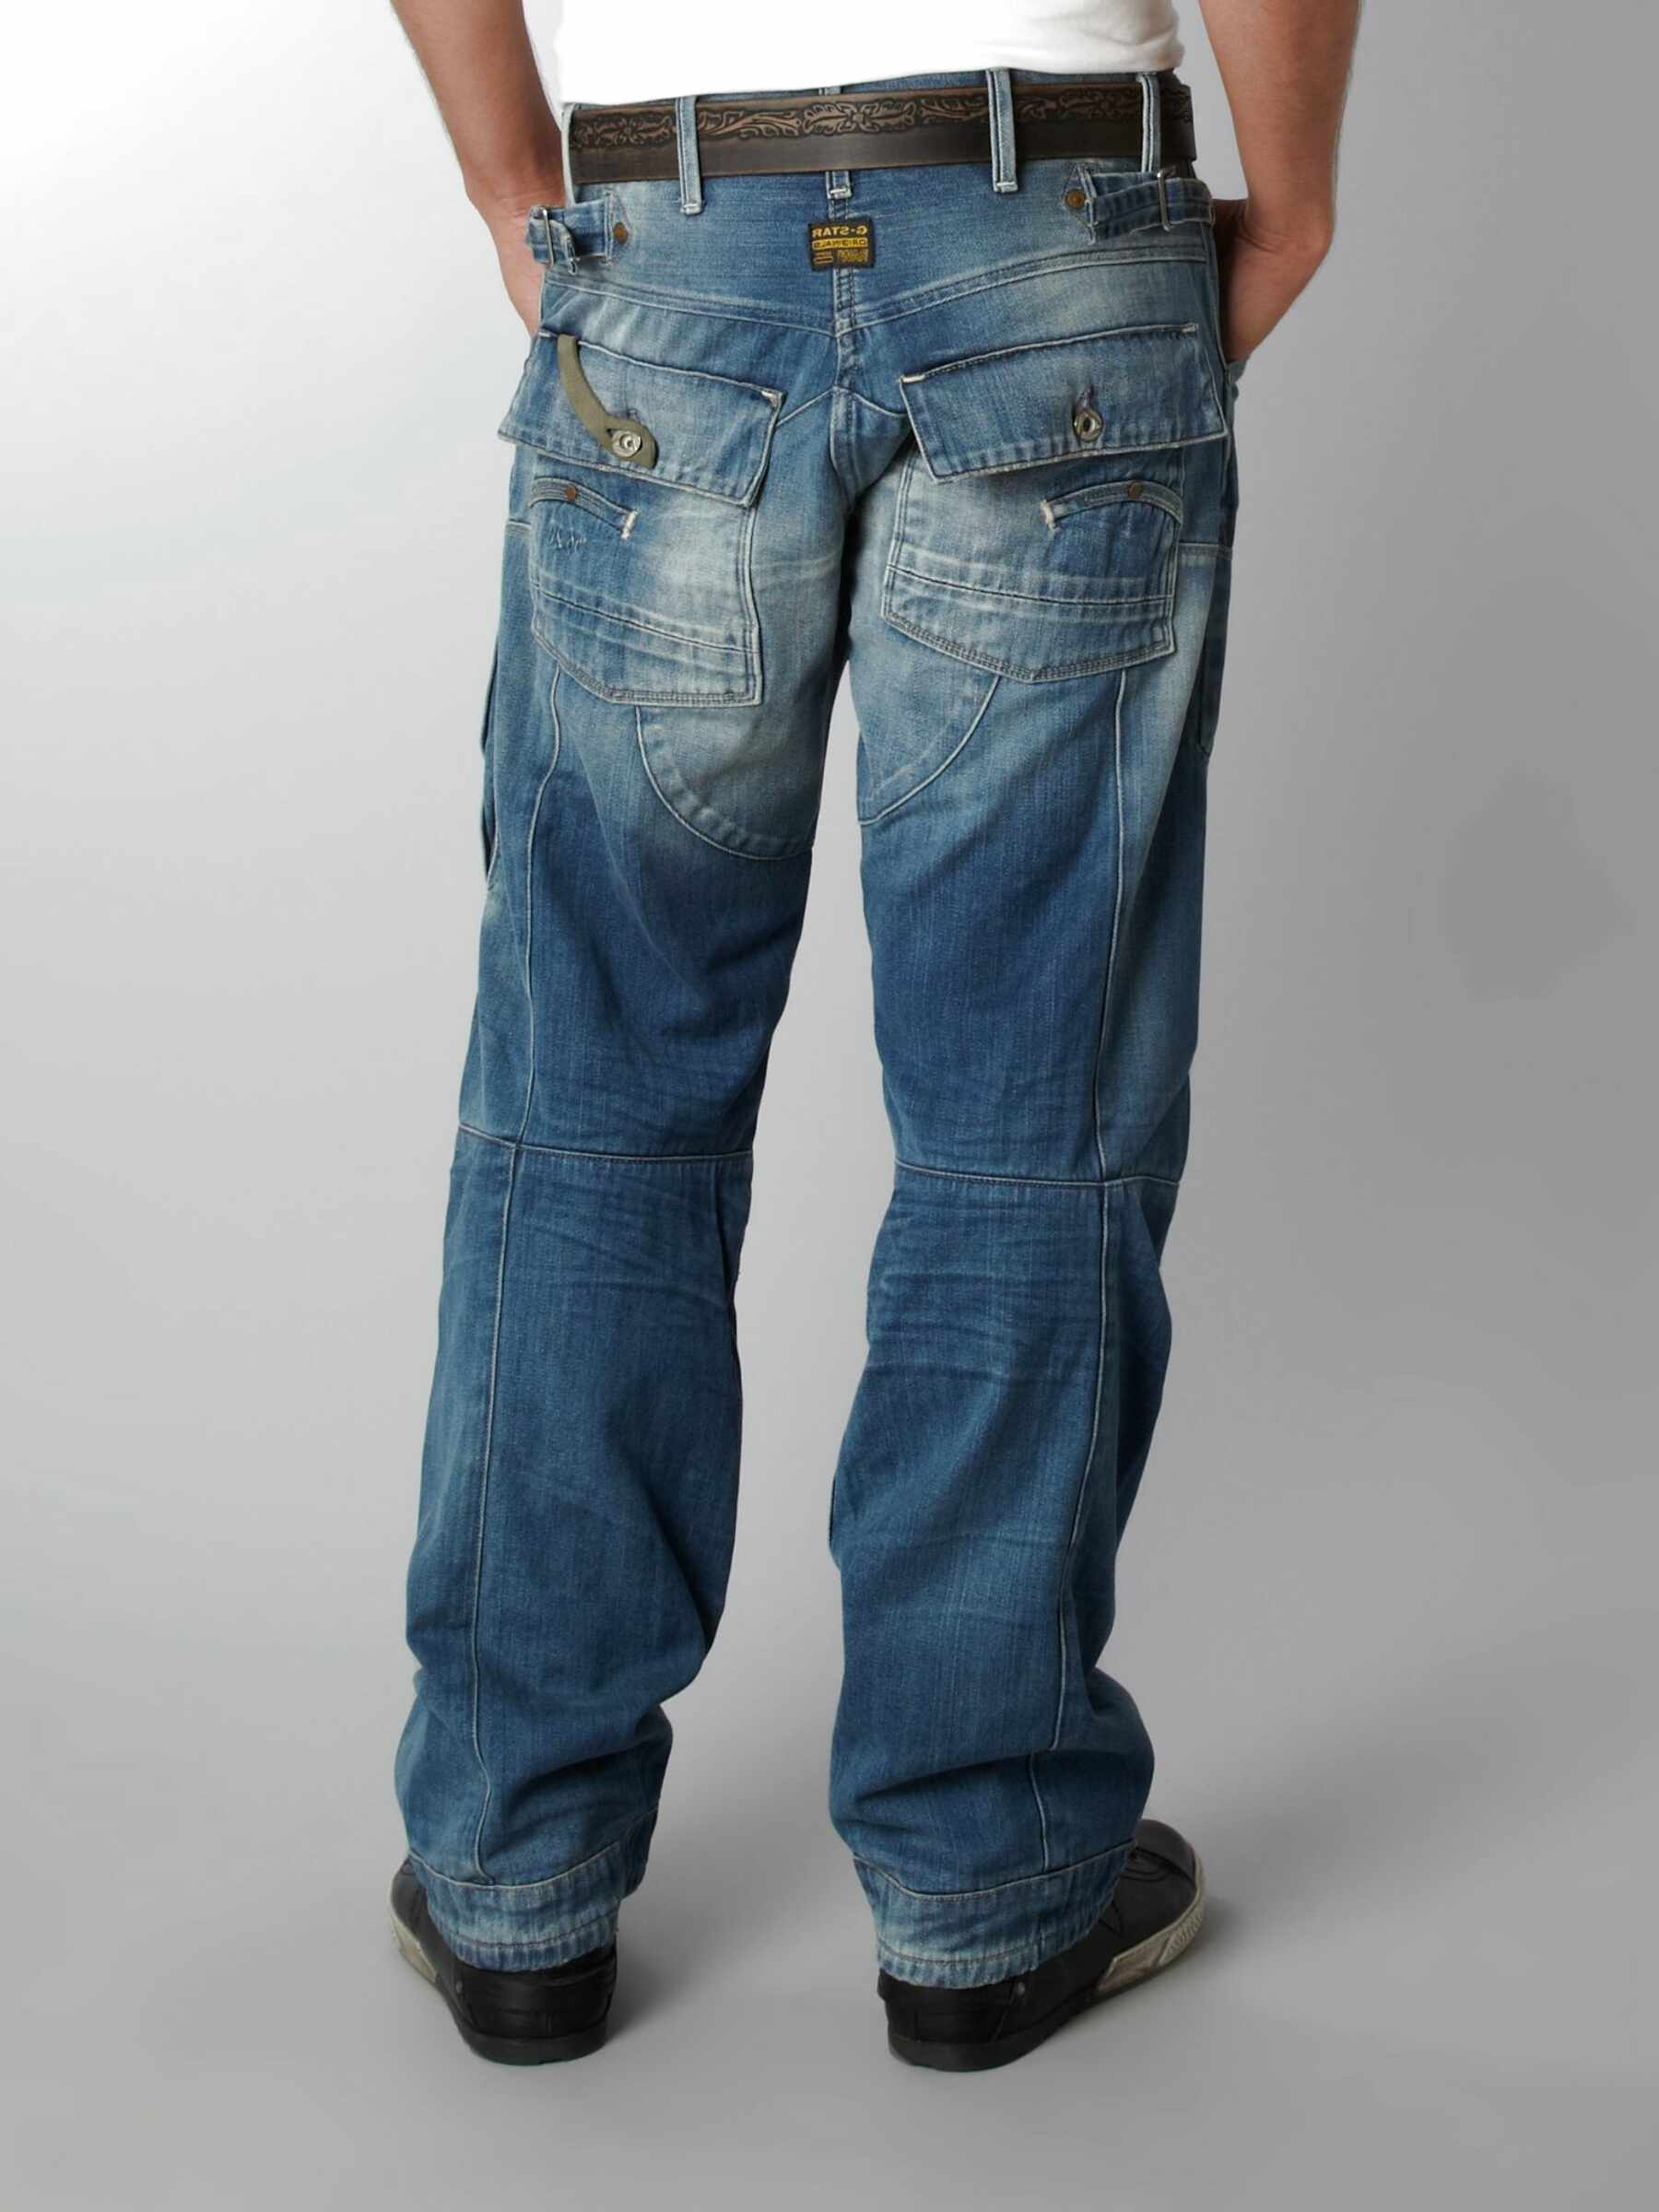 g star elwood jeans for sale